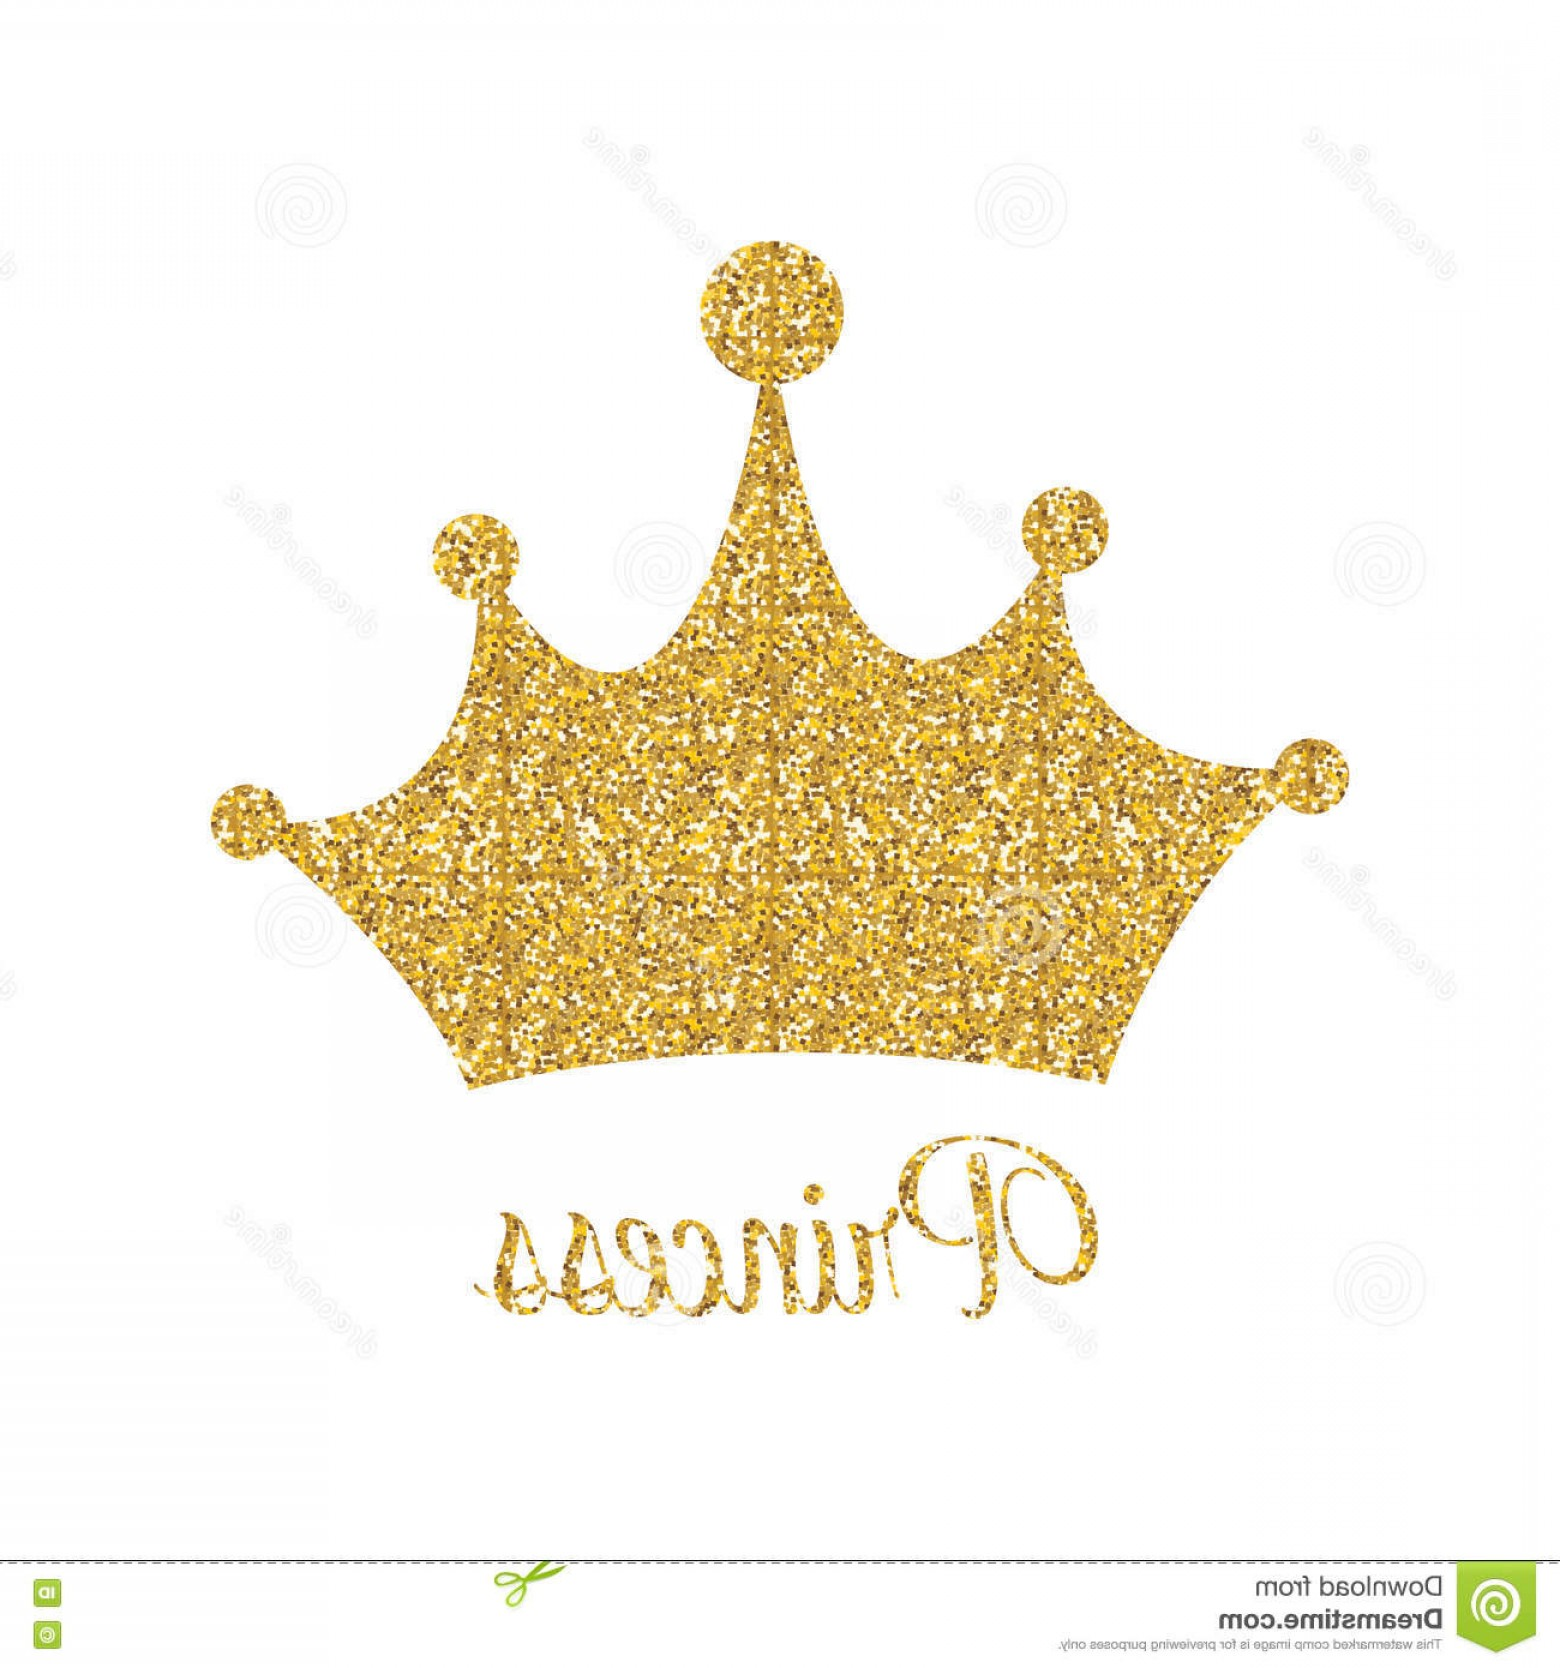 Transparent Queen Crown Vector: Stock Illustration Princess Golden Glossy Background Crown Vector Illustration Eps Image